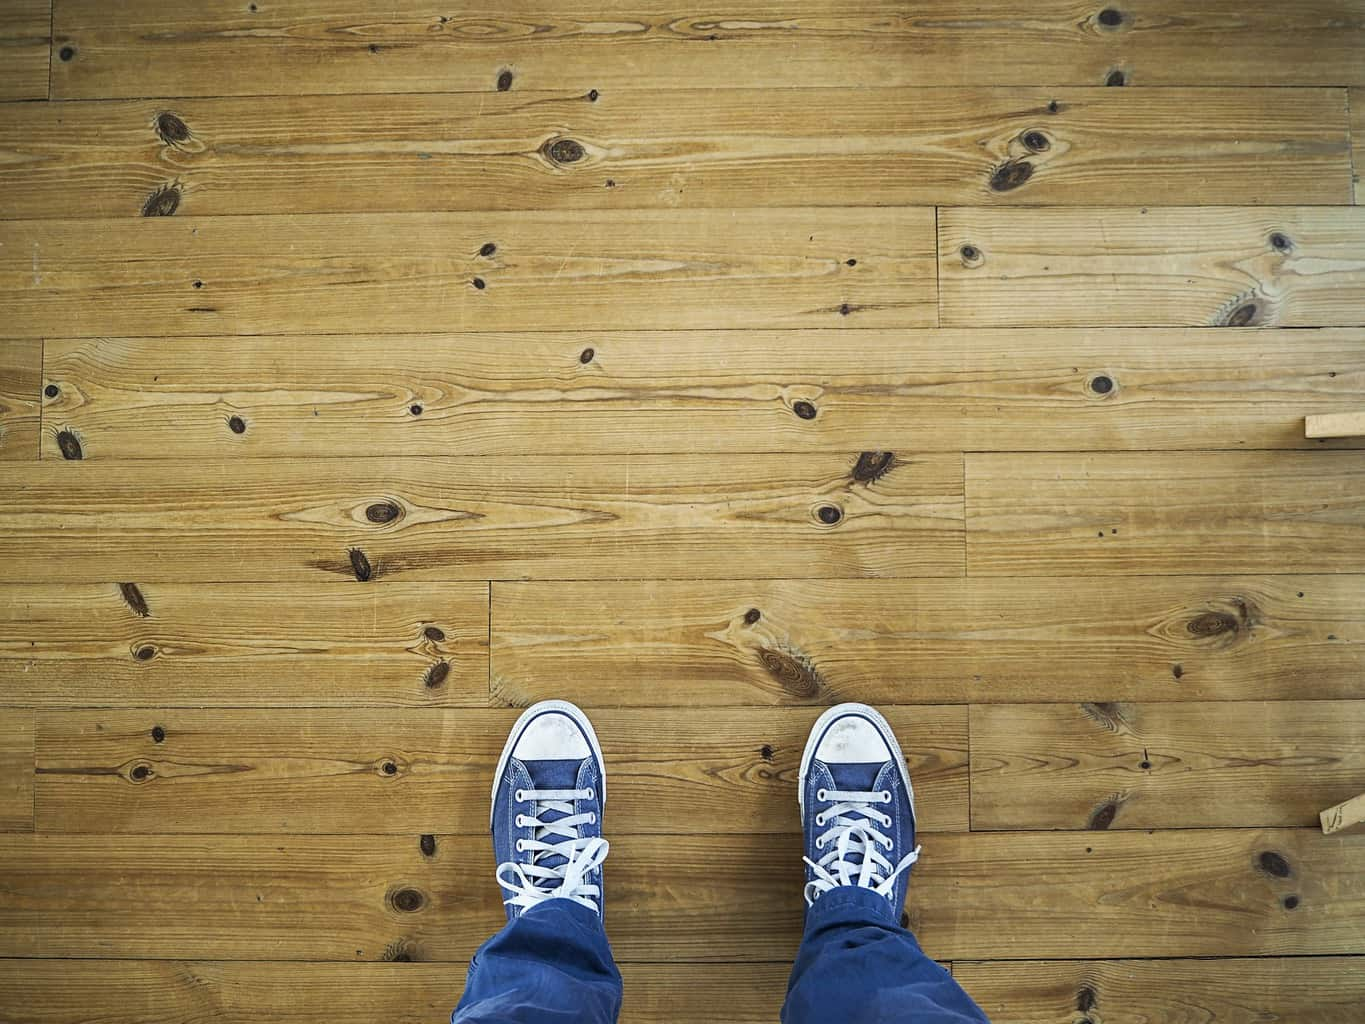 Person wearing sneakers stepping on laminated flooring